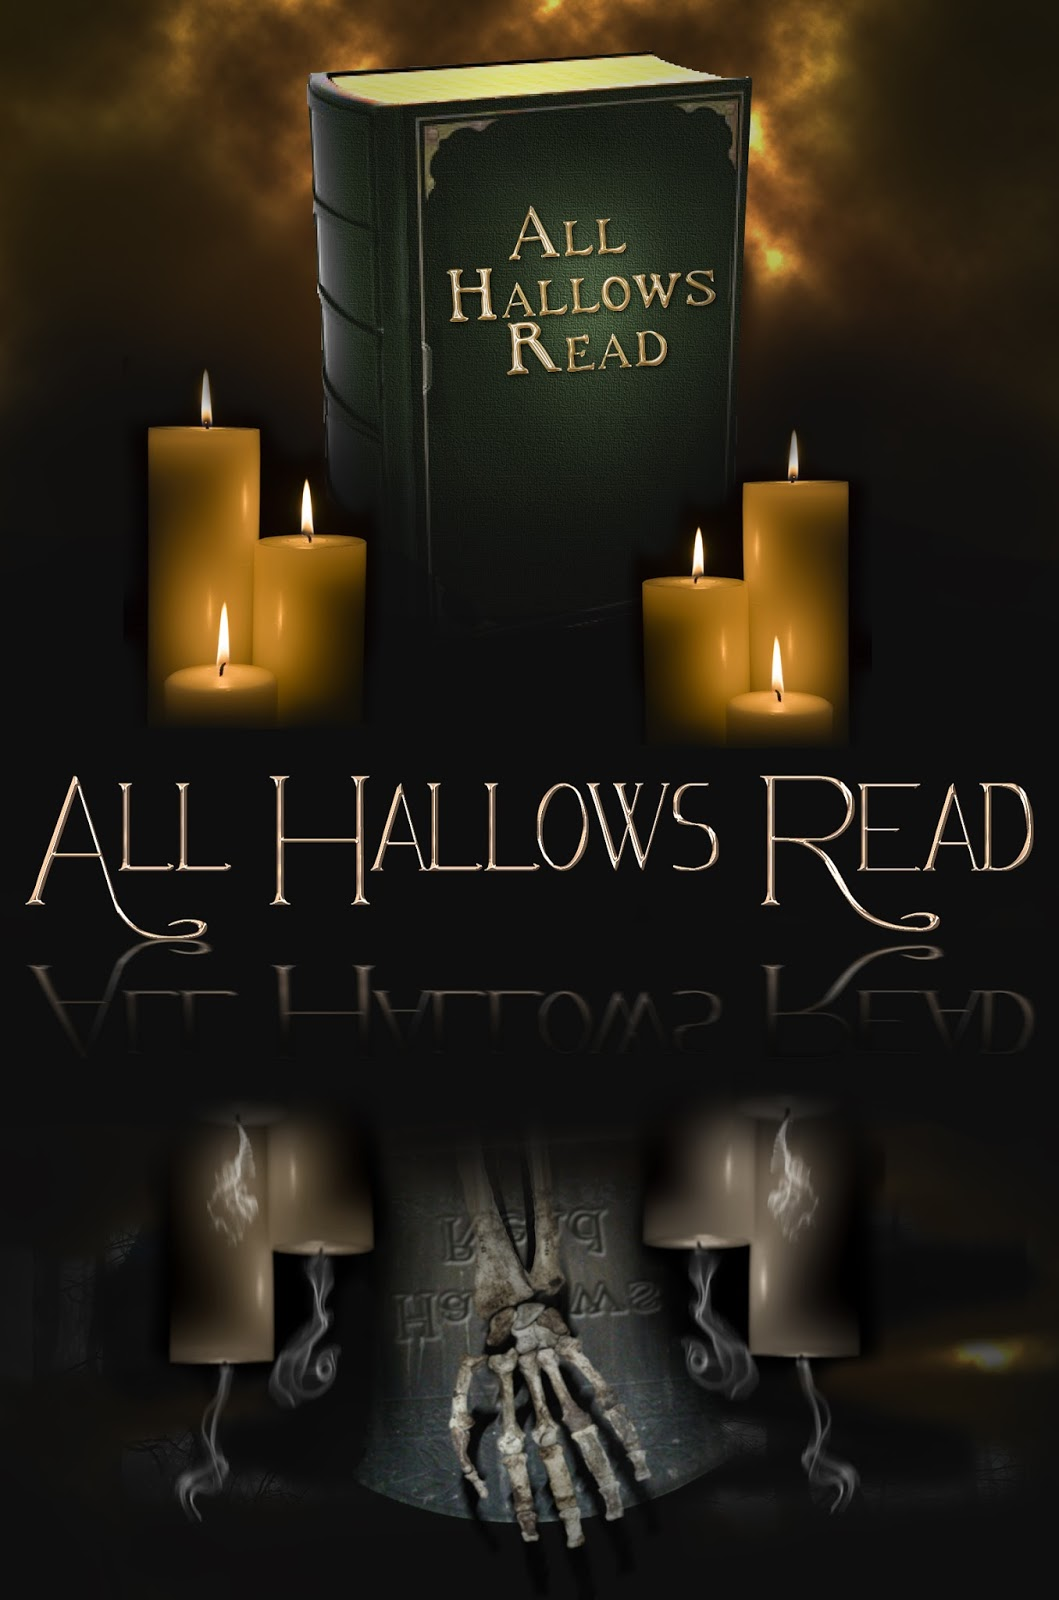 All Hallows' Read 2014